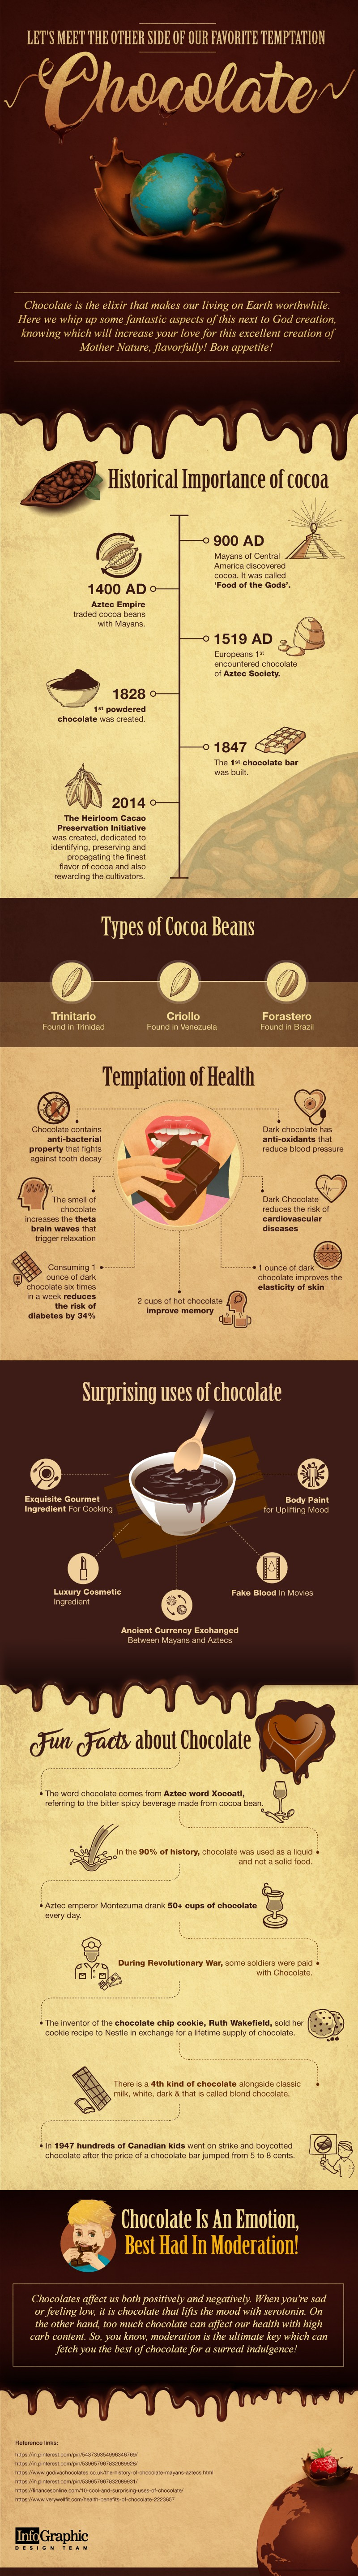 Tales of Surreal Indulgence: Fun Facts About Chocolate - Infographic